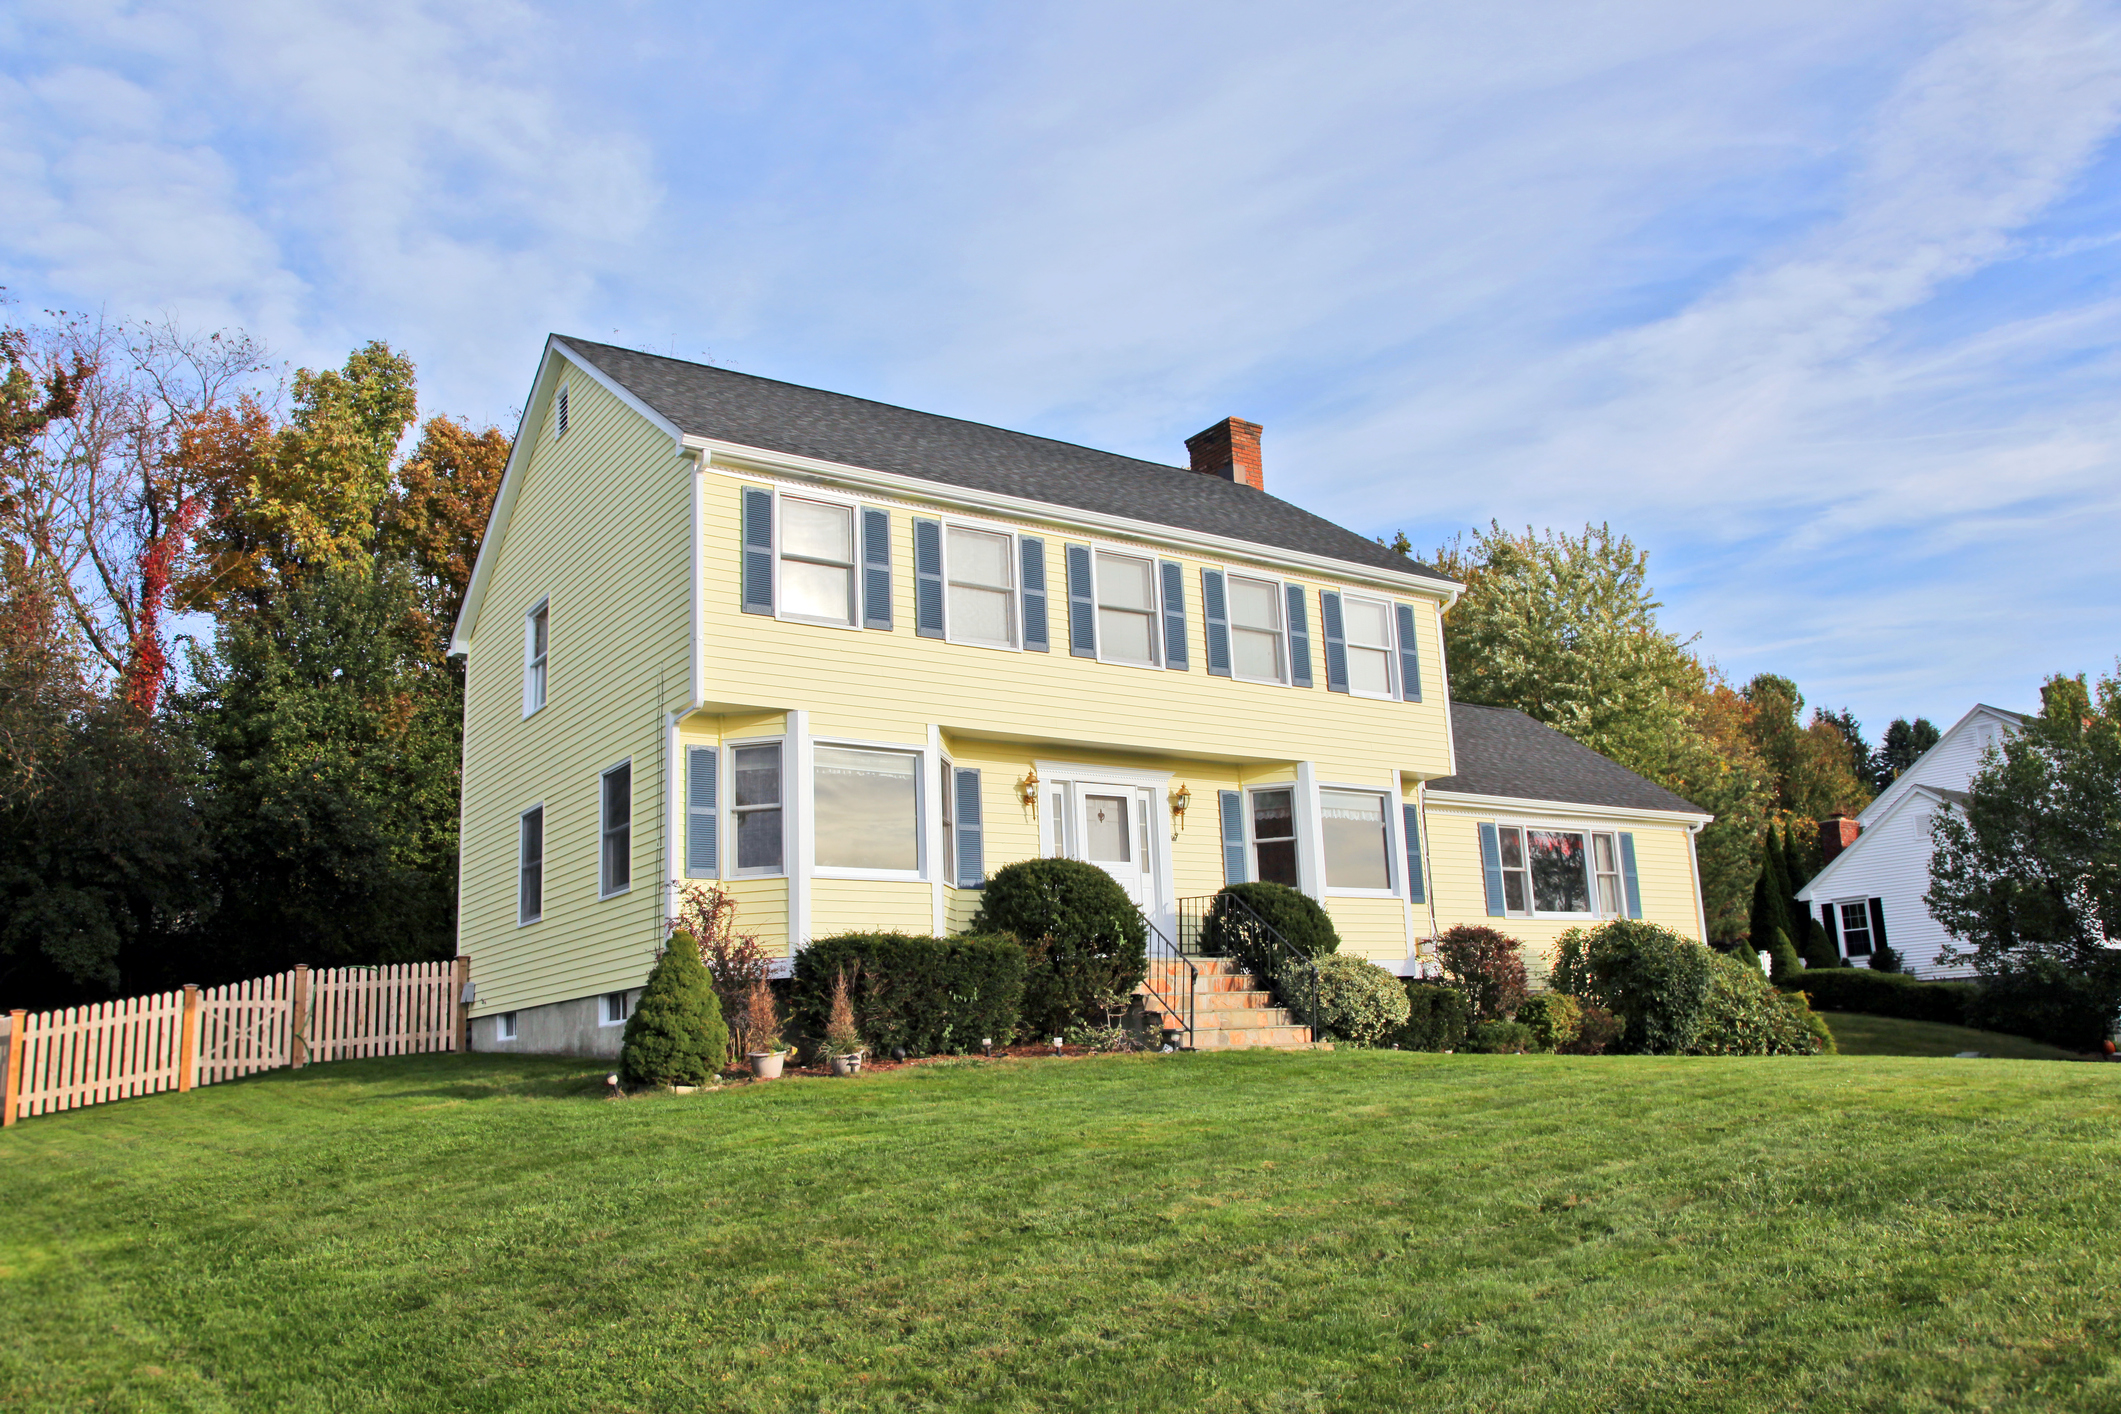 Siding Installers Norwalk Ct Trusted Installers At Advanced Window Systems